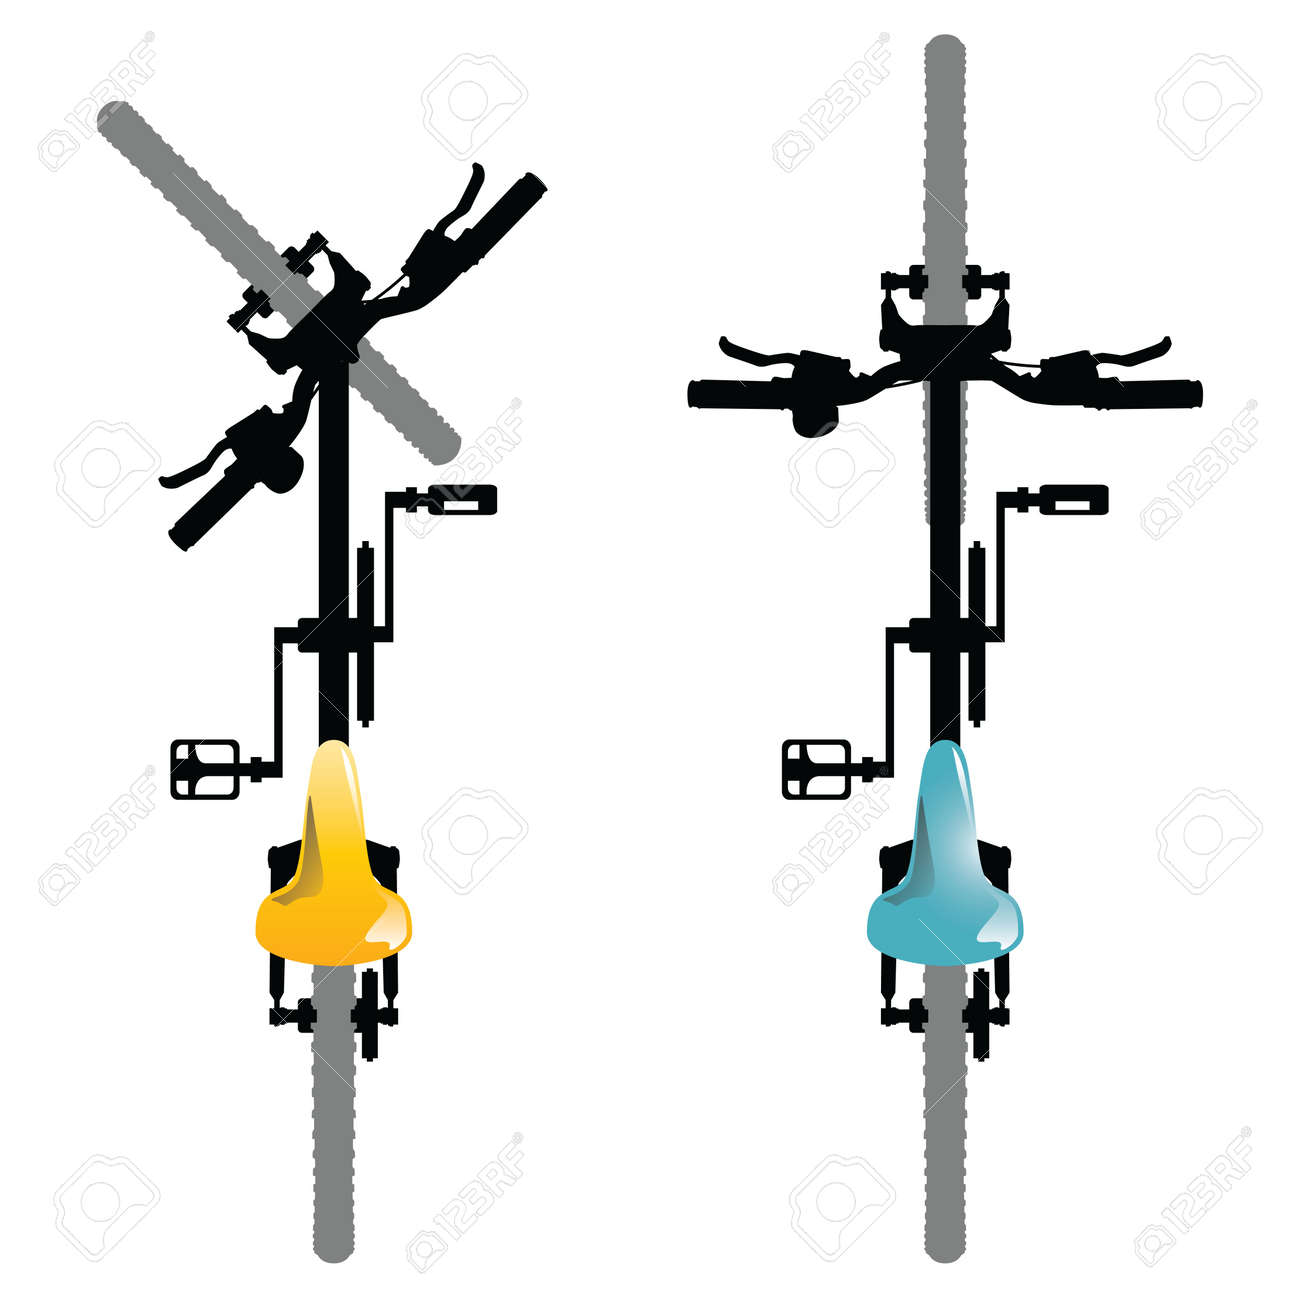 Bike. Illustration of a top view of generic bicycles isolated on a white background. Stock Vector - 45222030